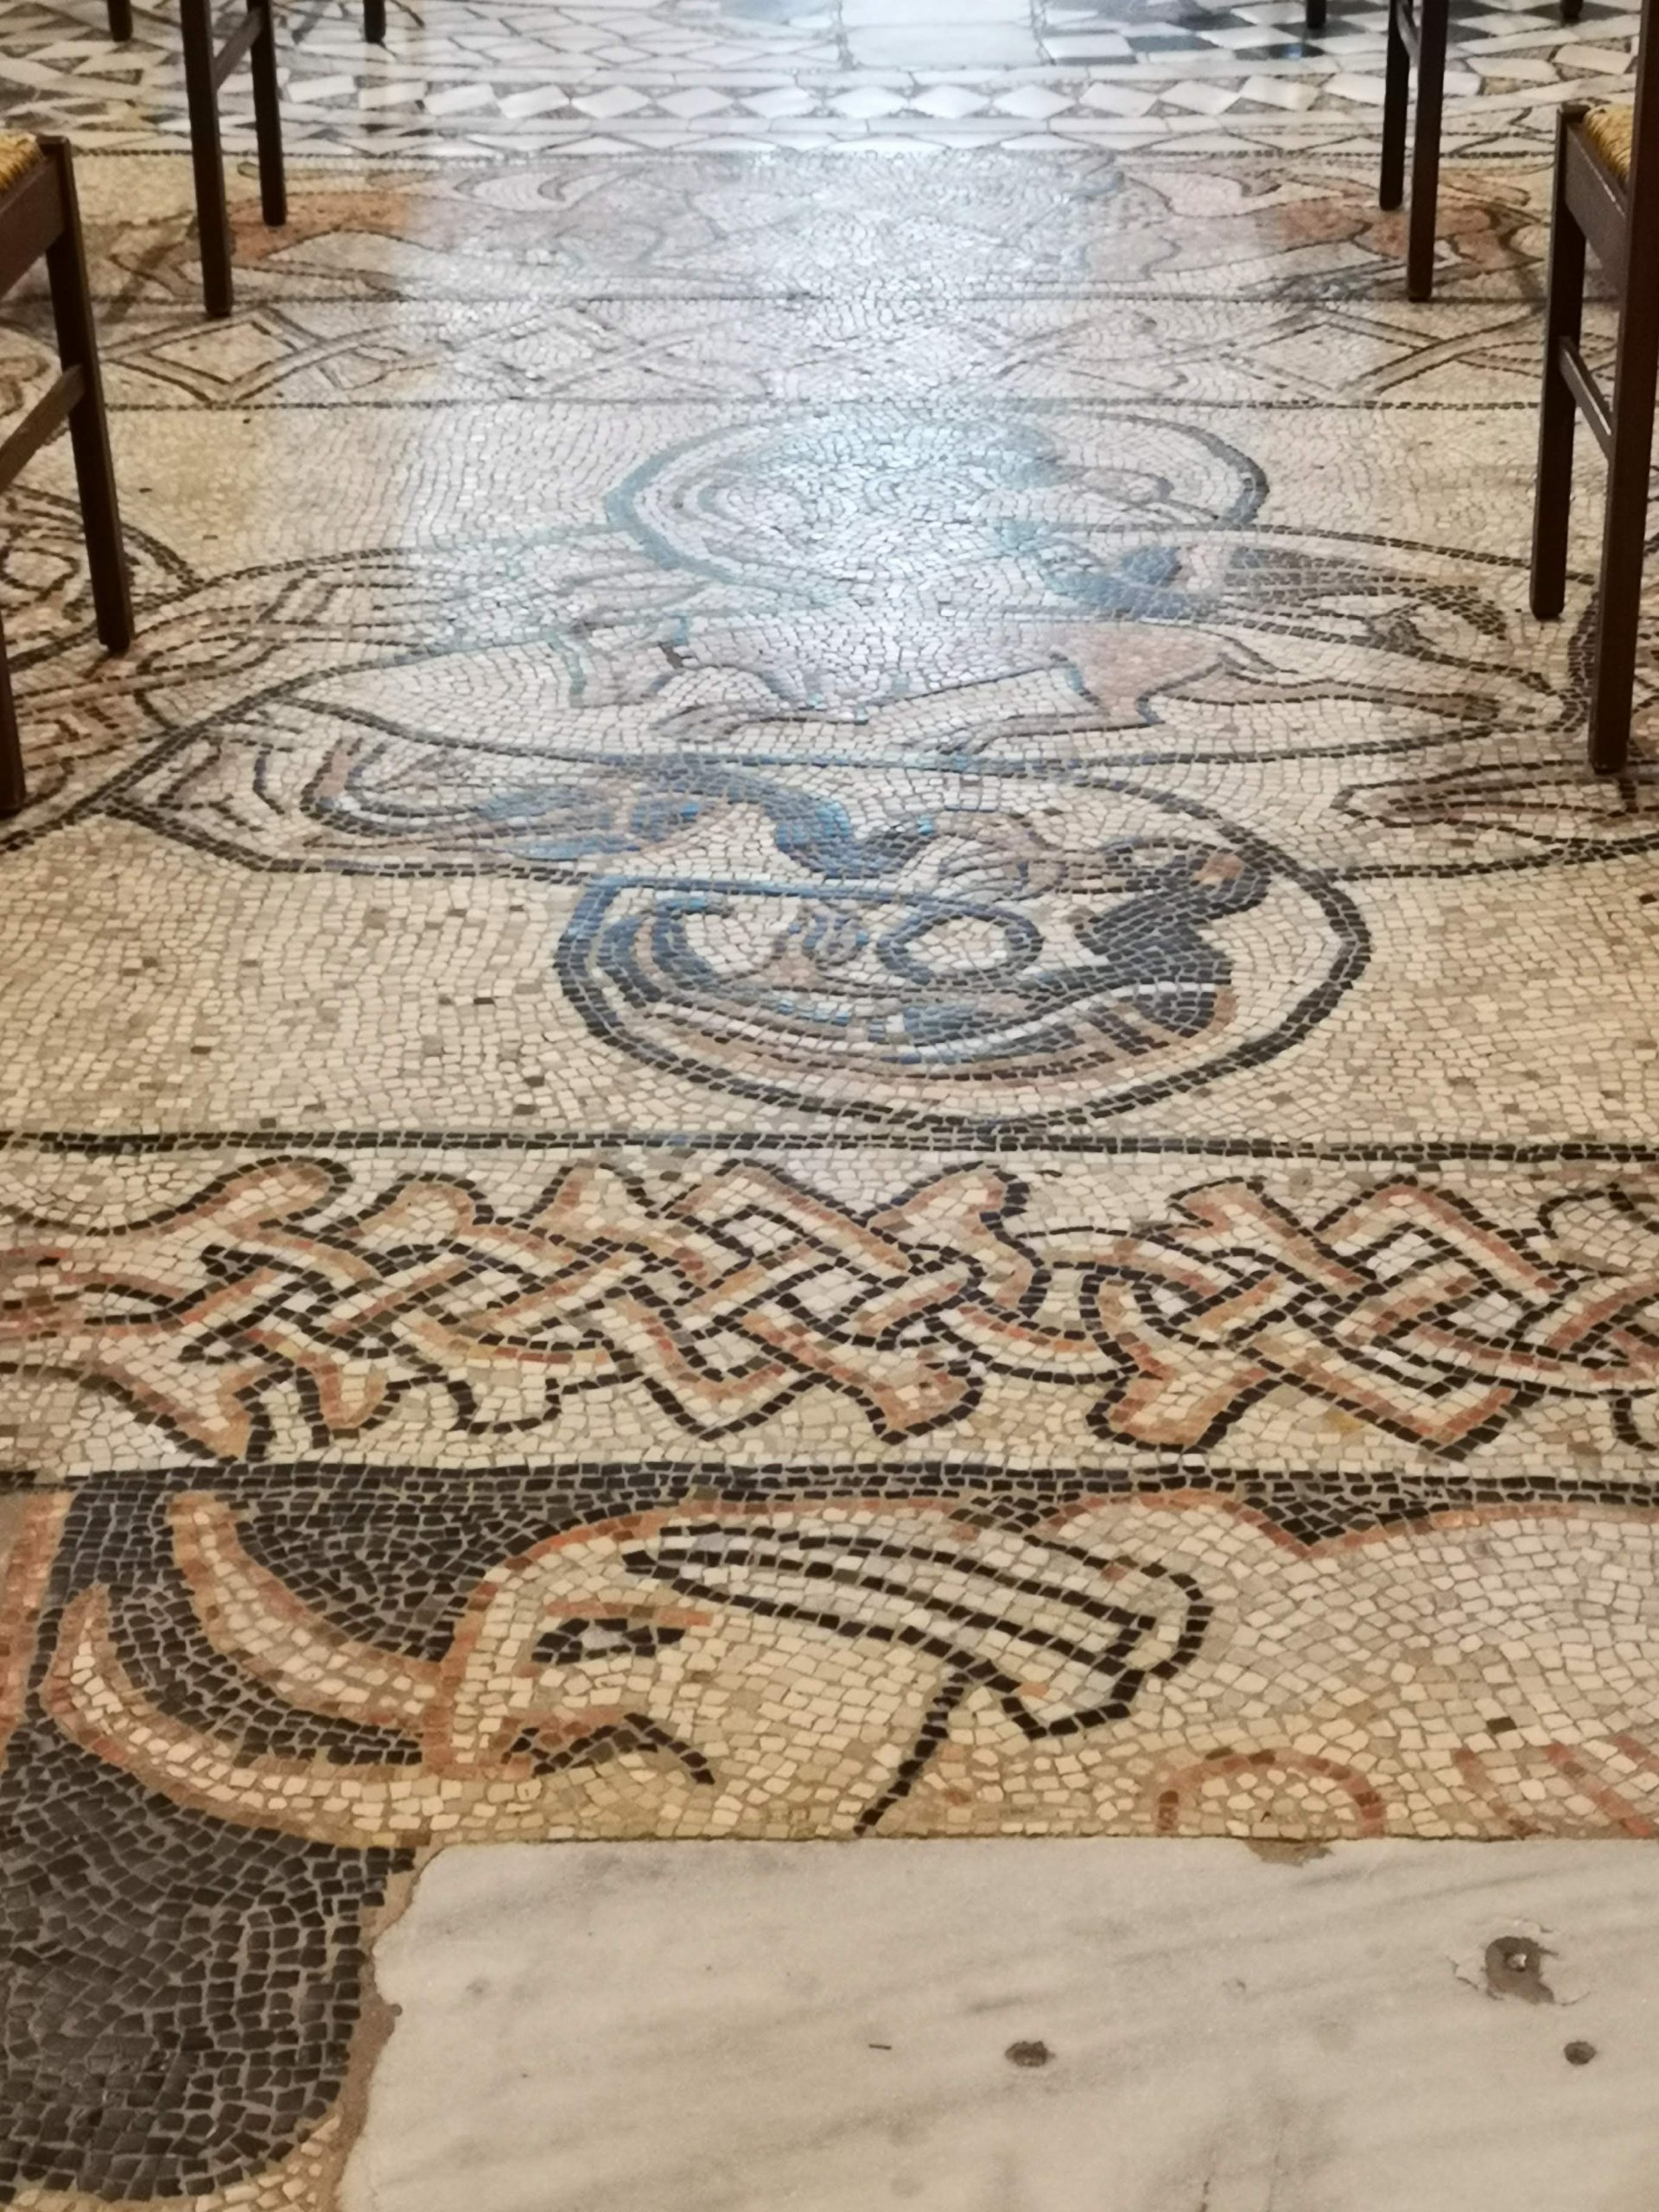 mosaic at abbey of pomposa